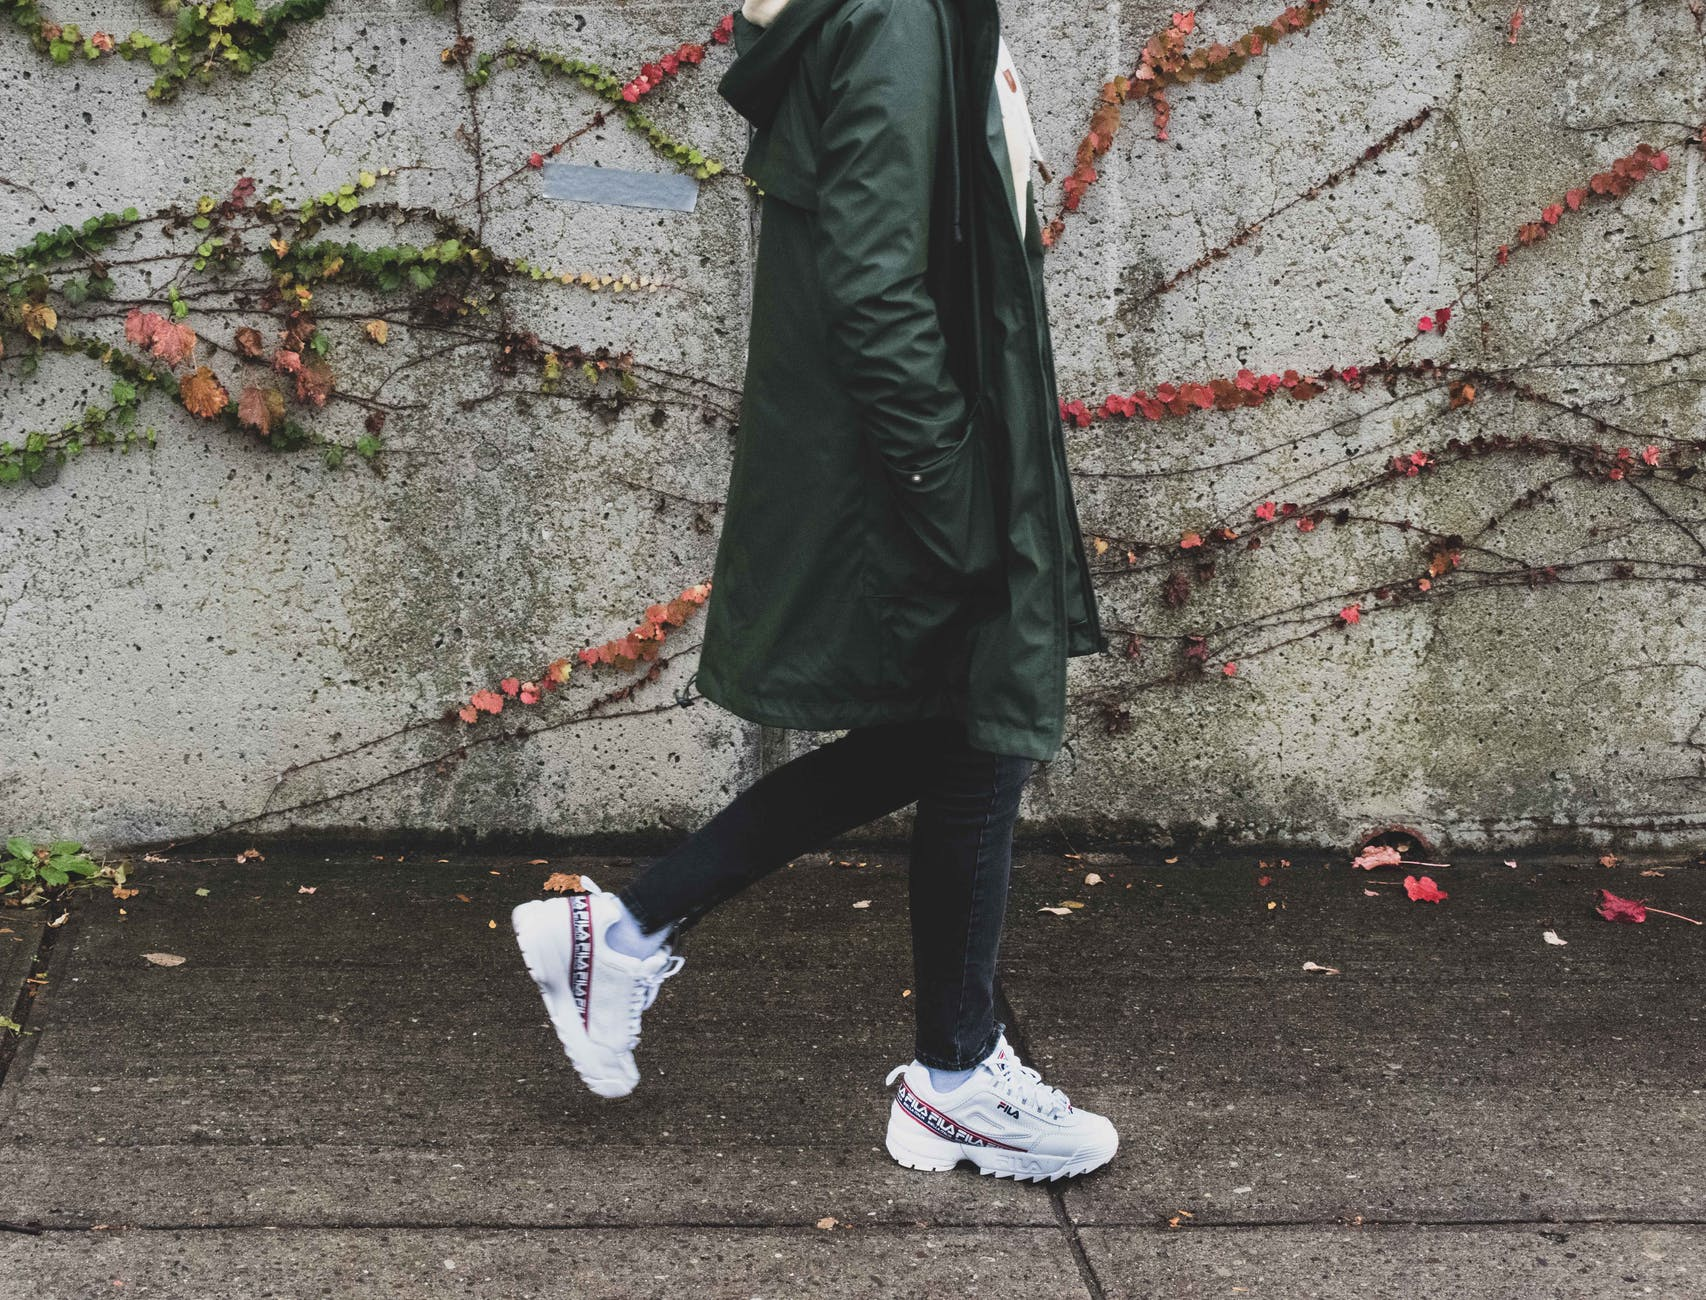 person wearing green coat and rubber shoes